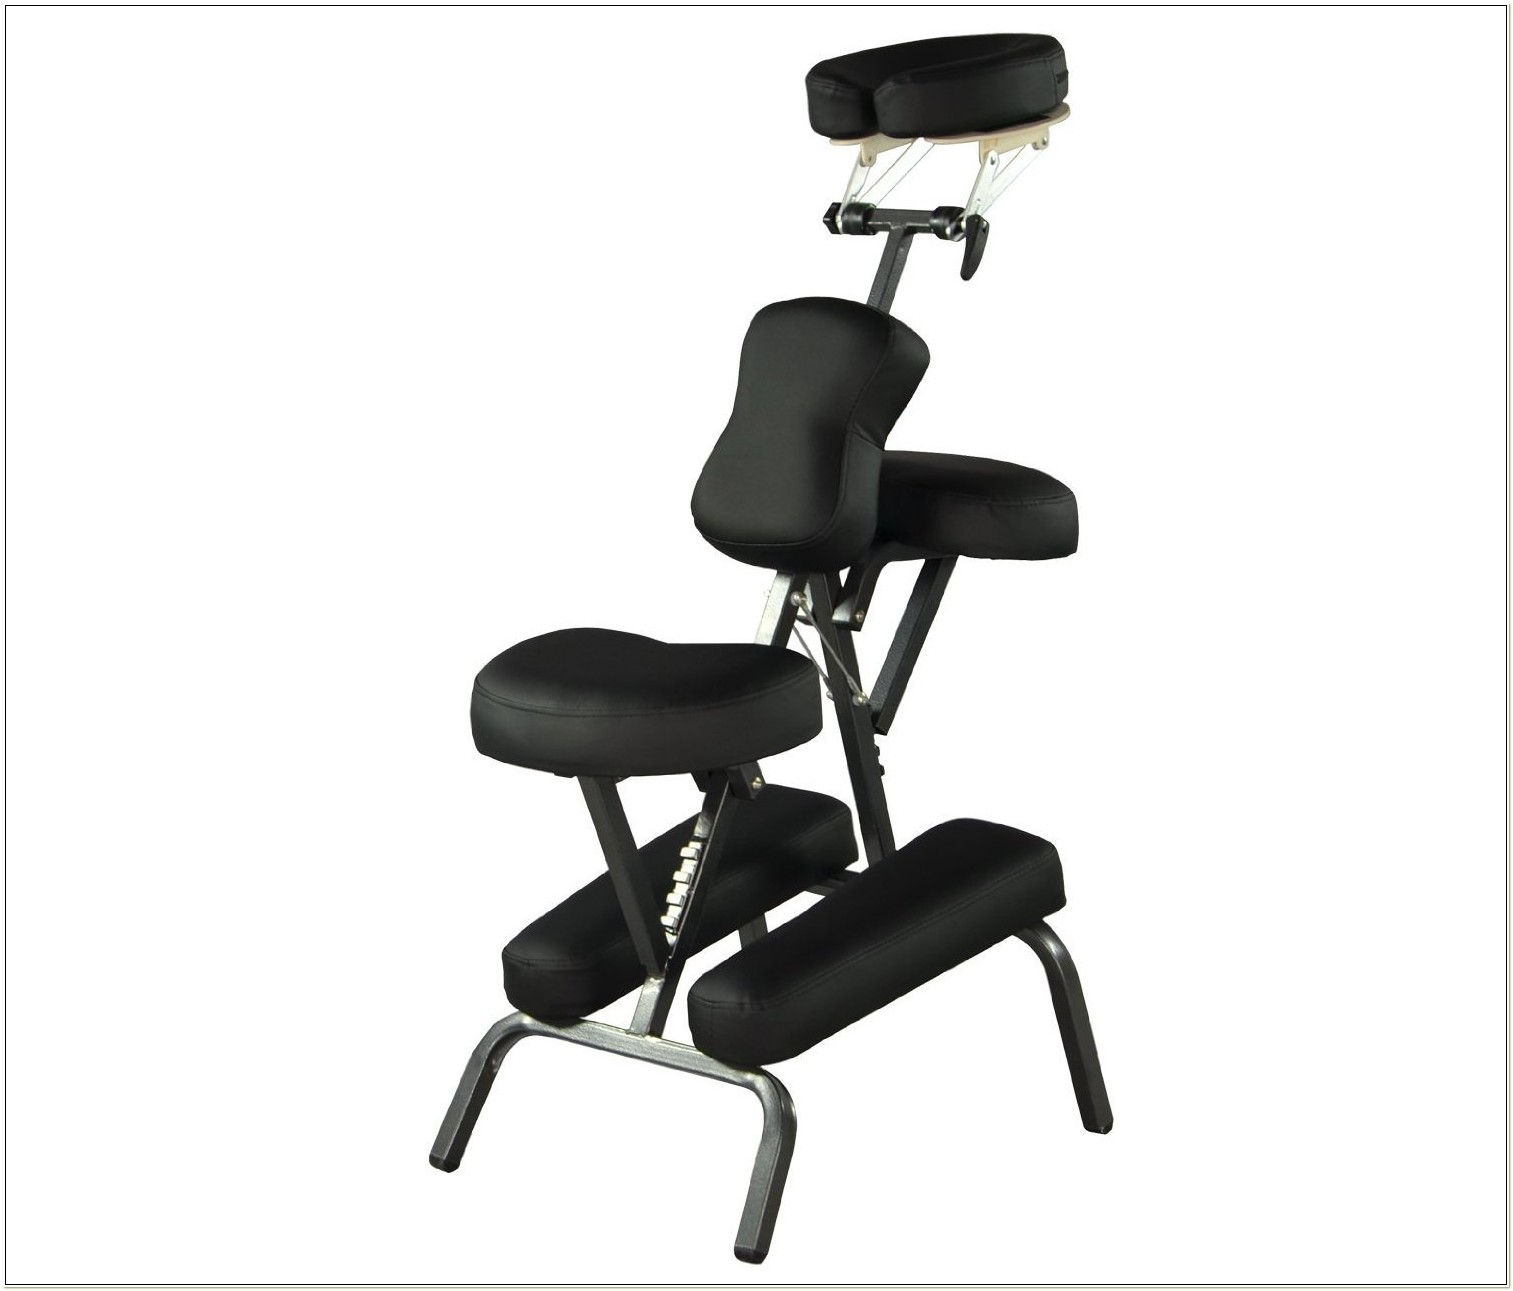 Top Rated Portable Massage Chairs